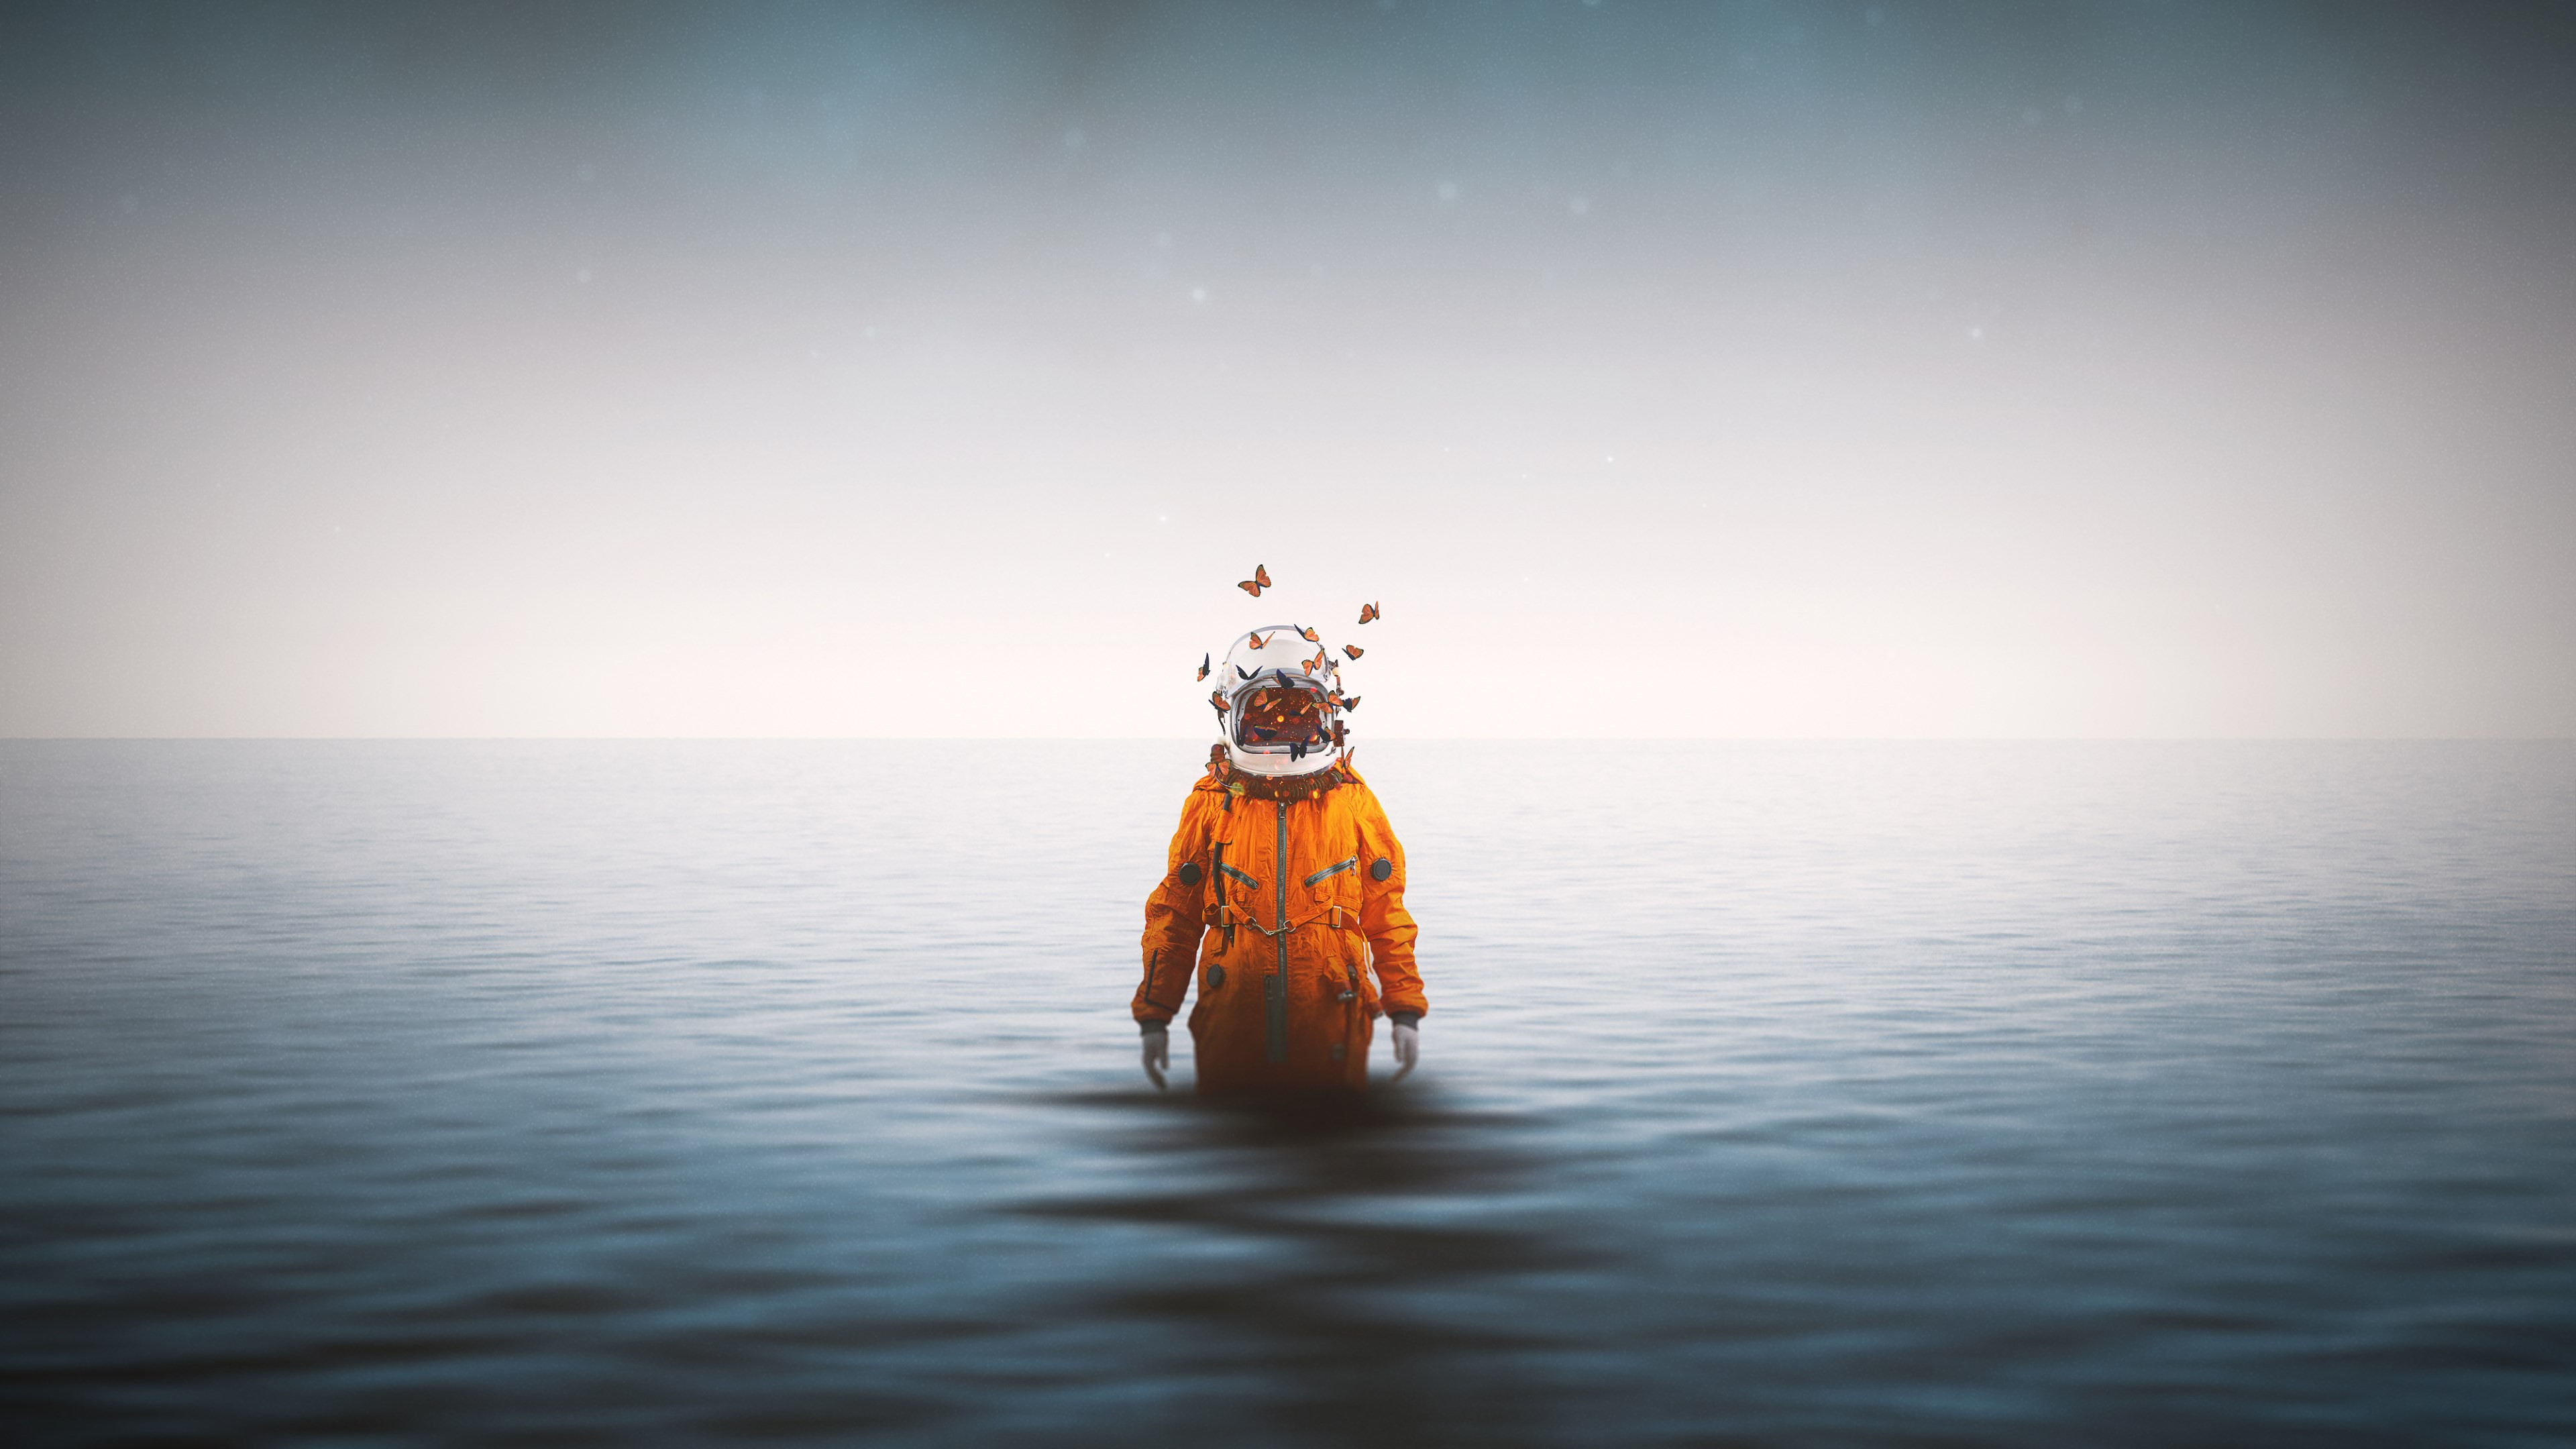 Lonely astronaut wallpaper 3840x2160